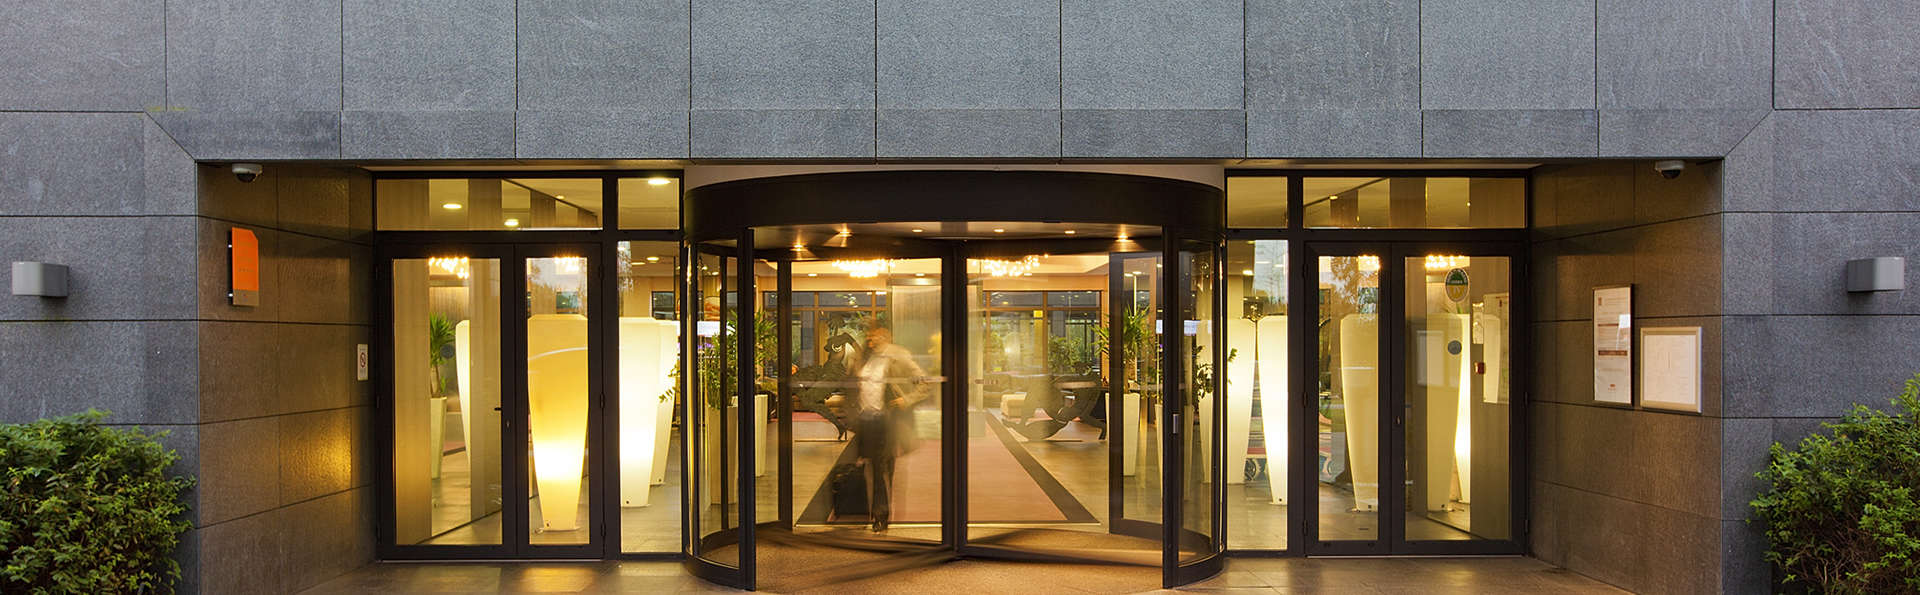 Residhome Suites Paris Sénart - edit_entrance.jpg